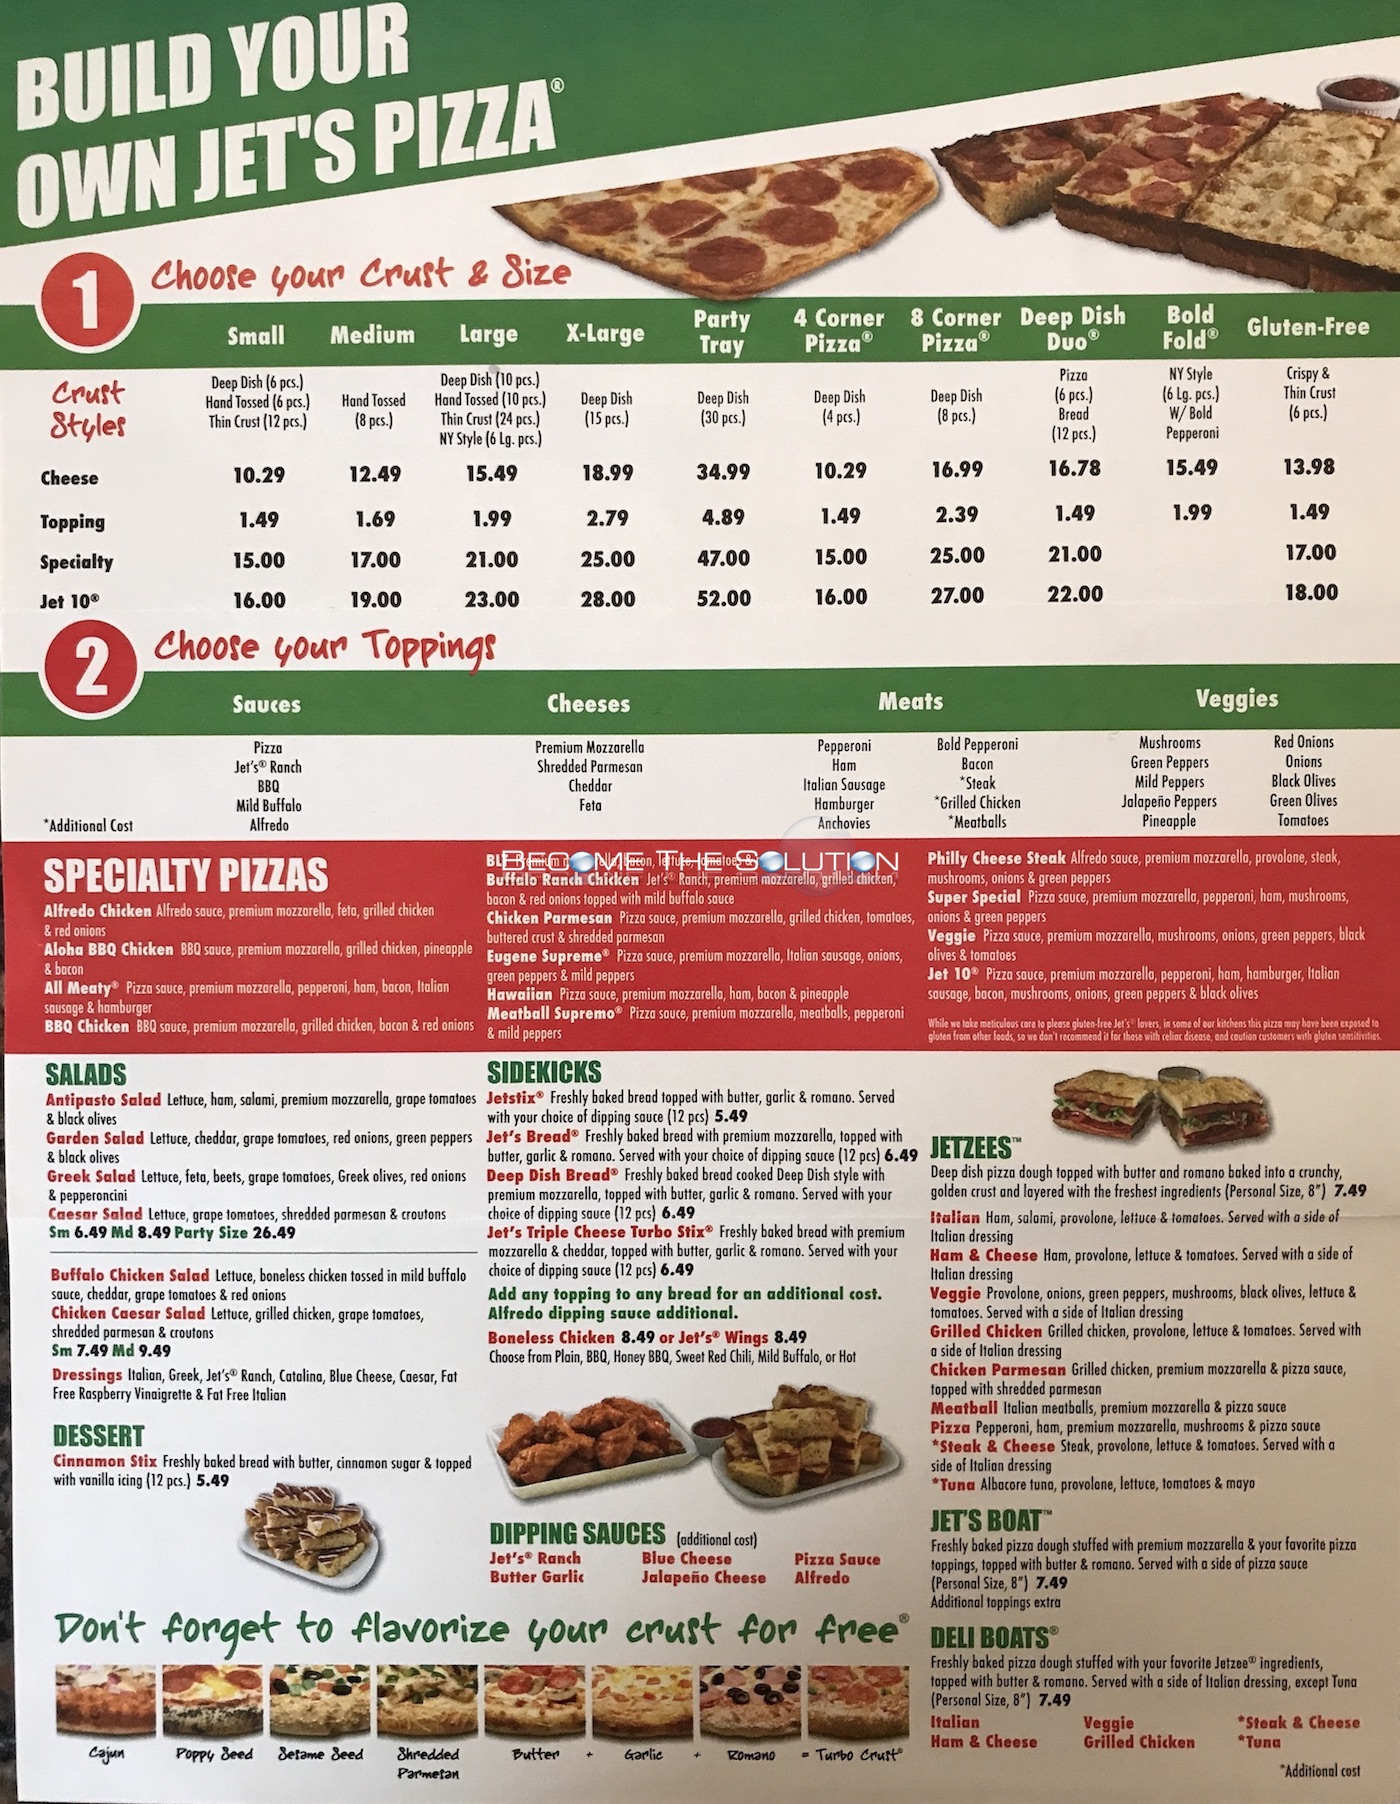 jet's pizza chicago carry out menu (scanned menu with prices)